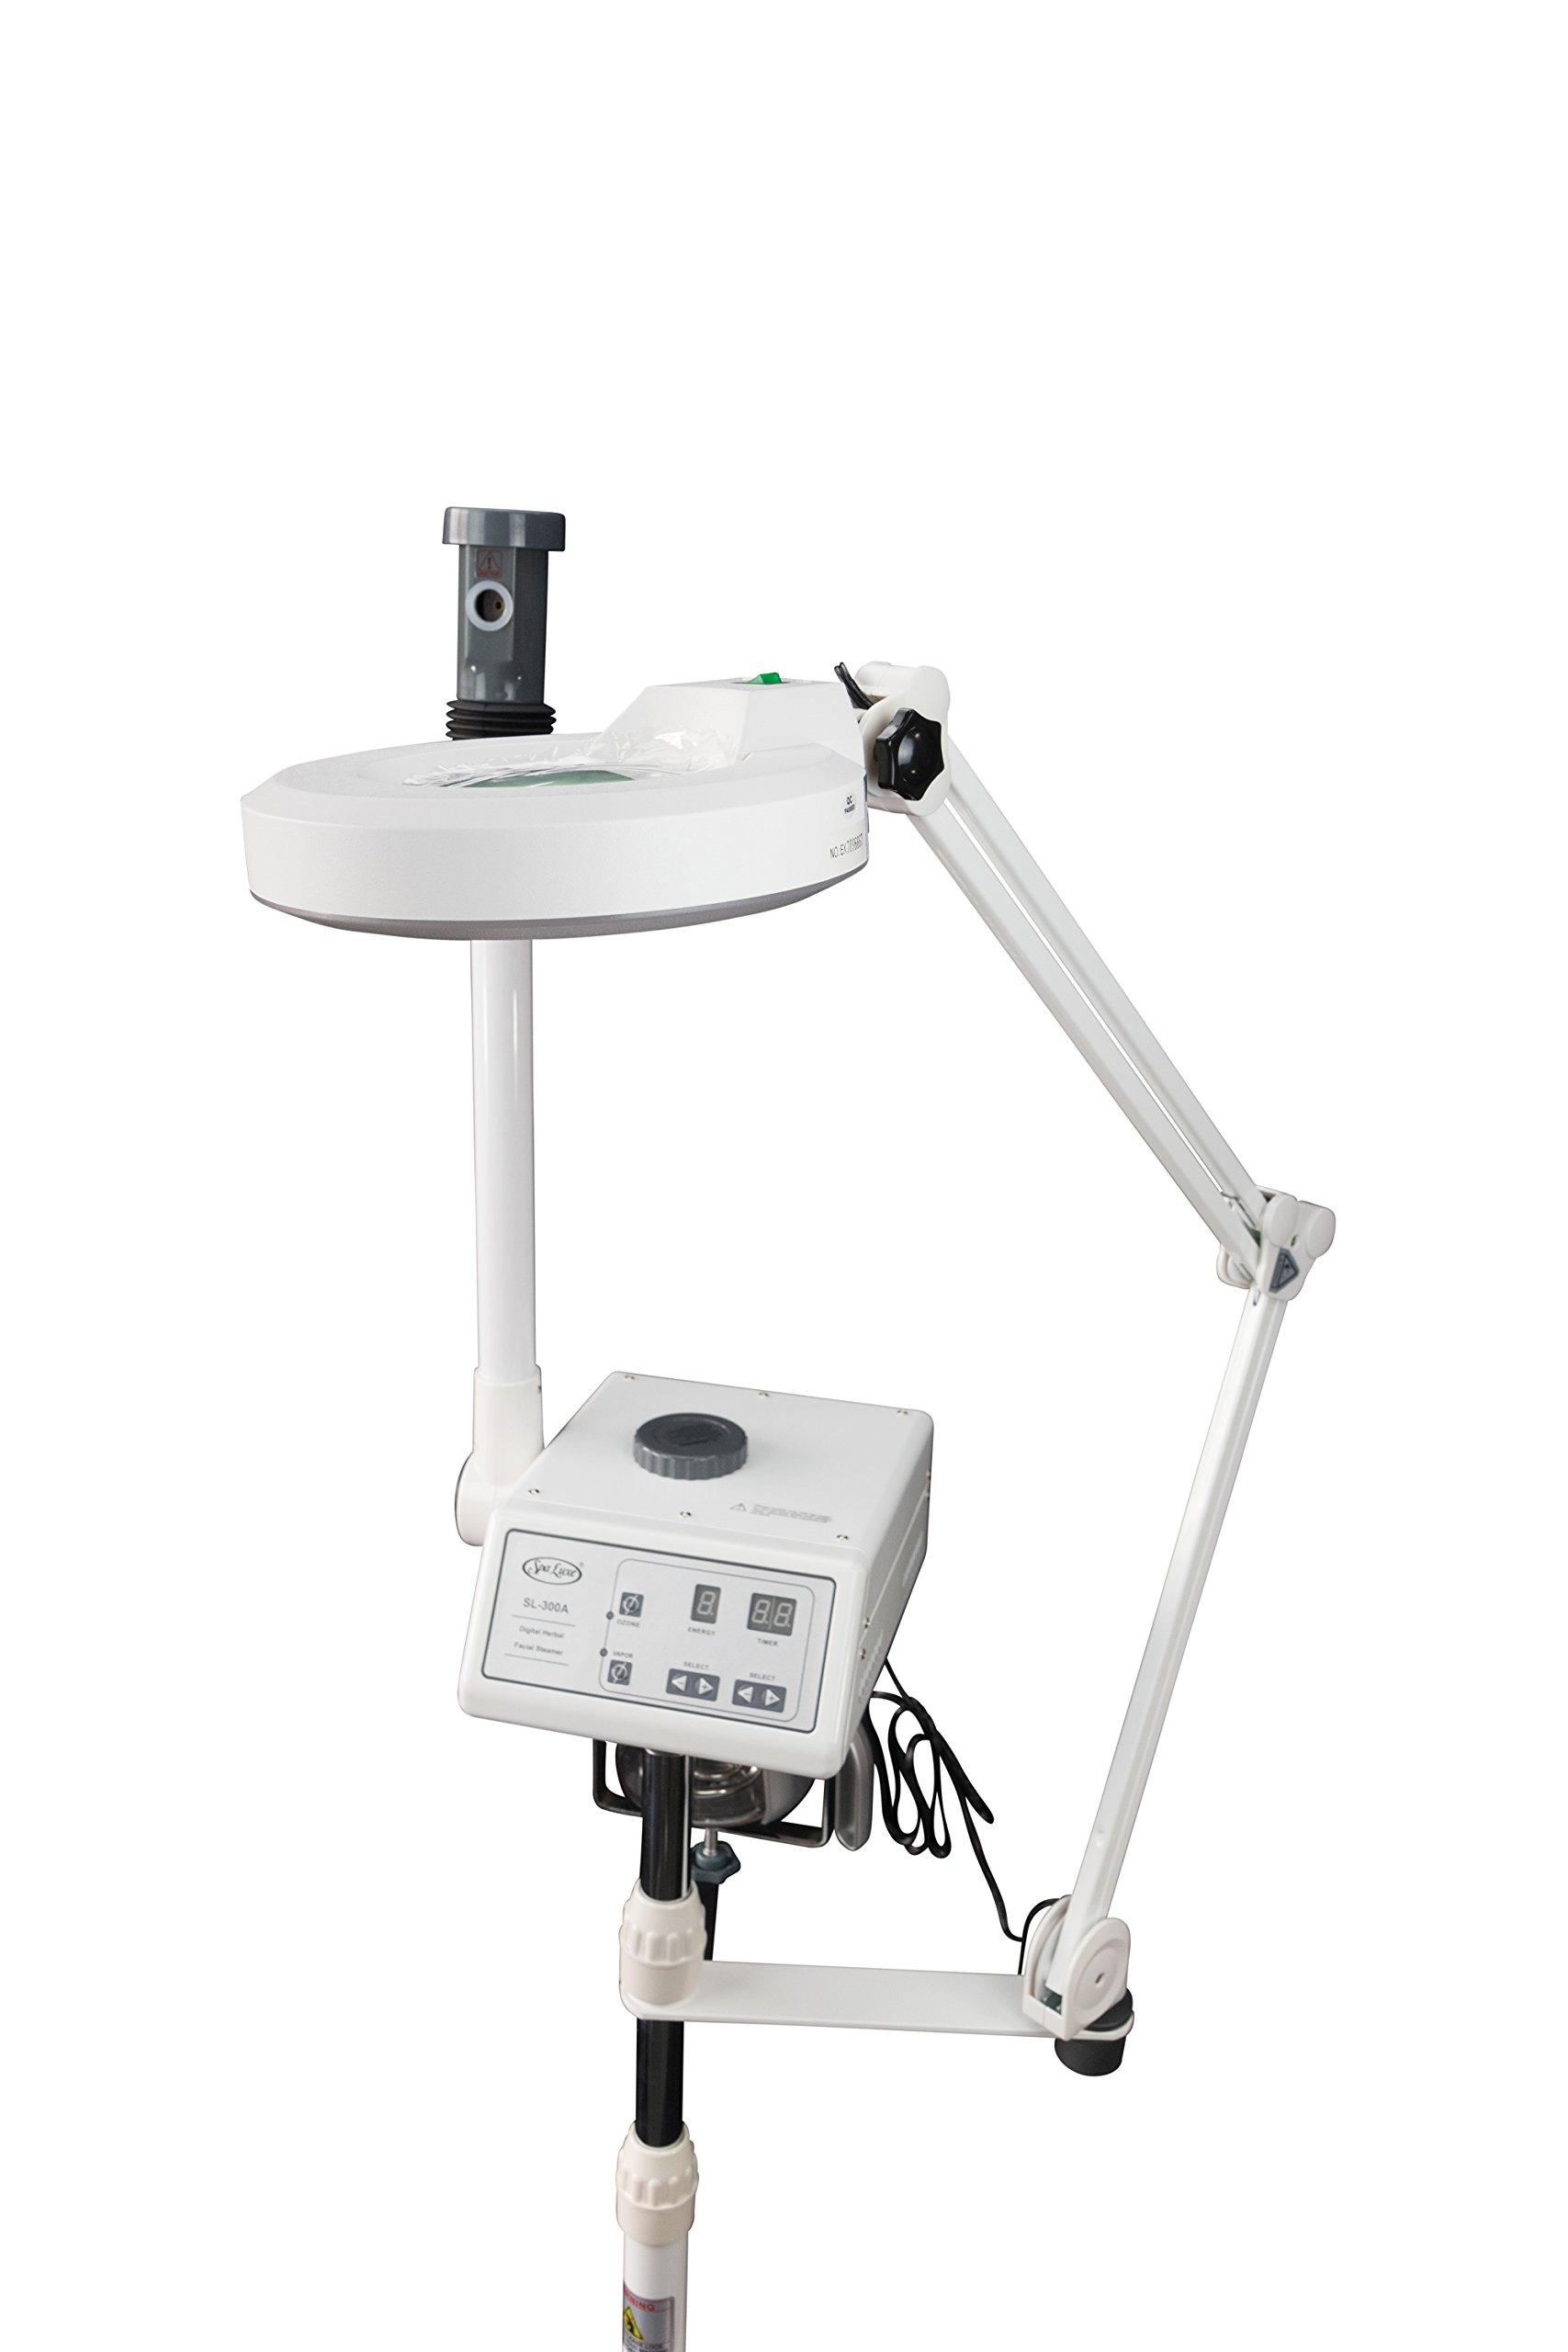 2 in 1 Digital Facial Steamer and LED Magnifying Lamp Combo - NEW by Spa Luxe (Image #4)